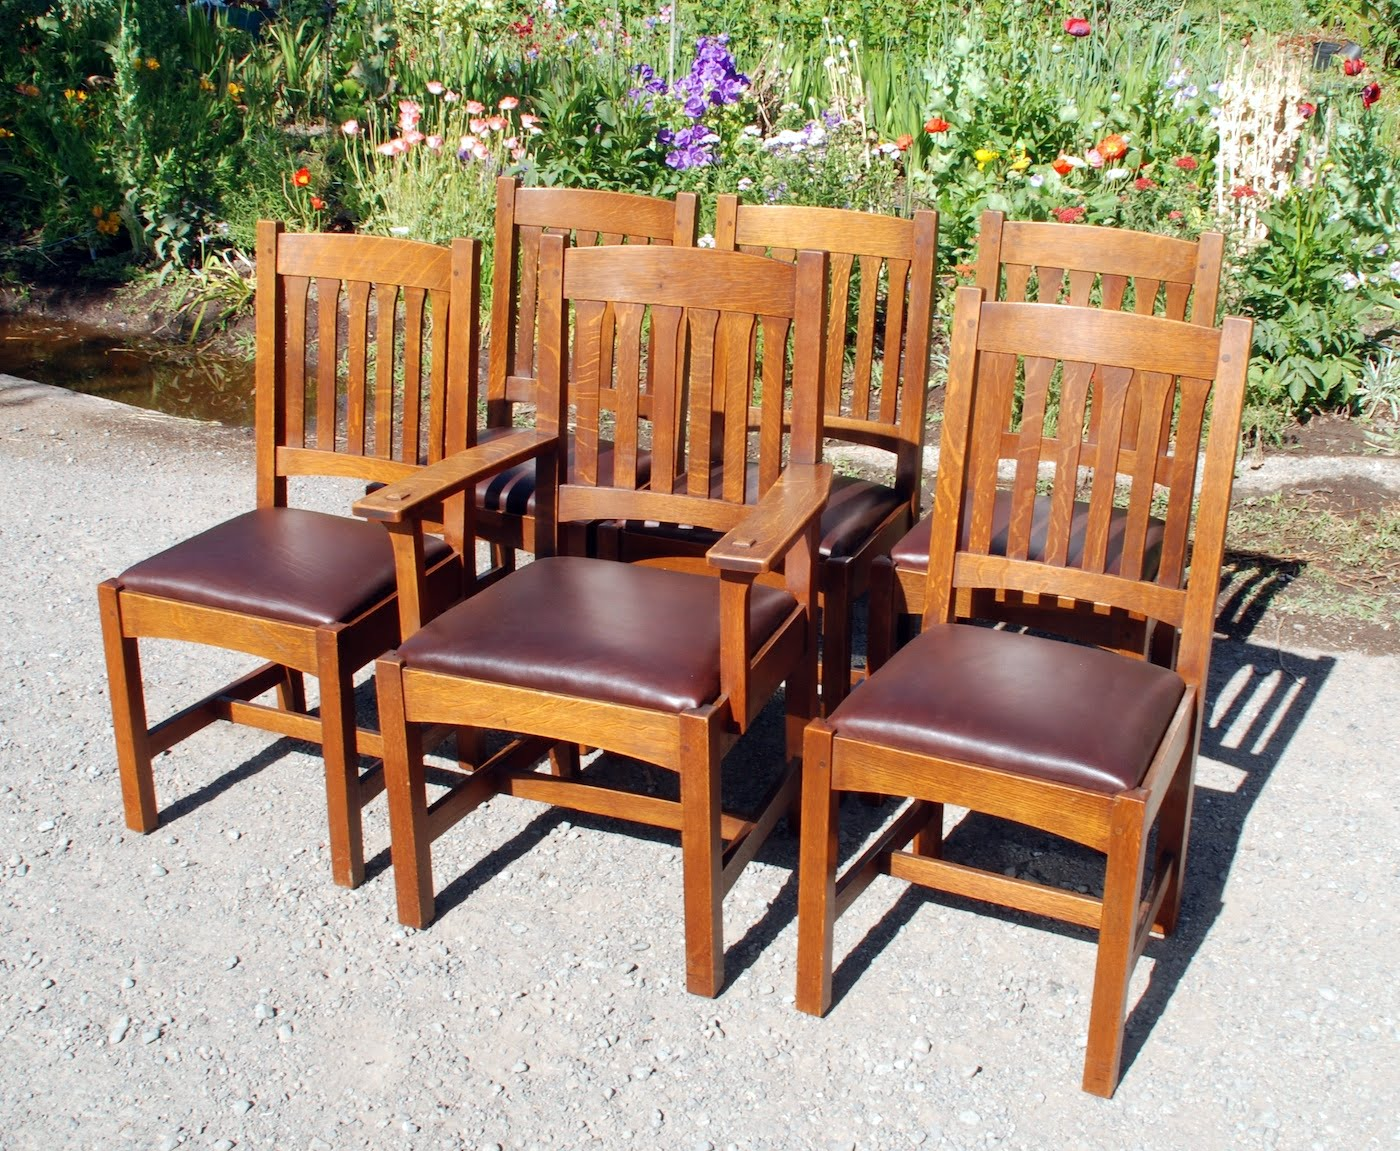 Awesome Set Of 6 Original L. U0026 J. G. Stickley Dining Chairs In Excellent Original  Finish.